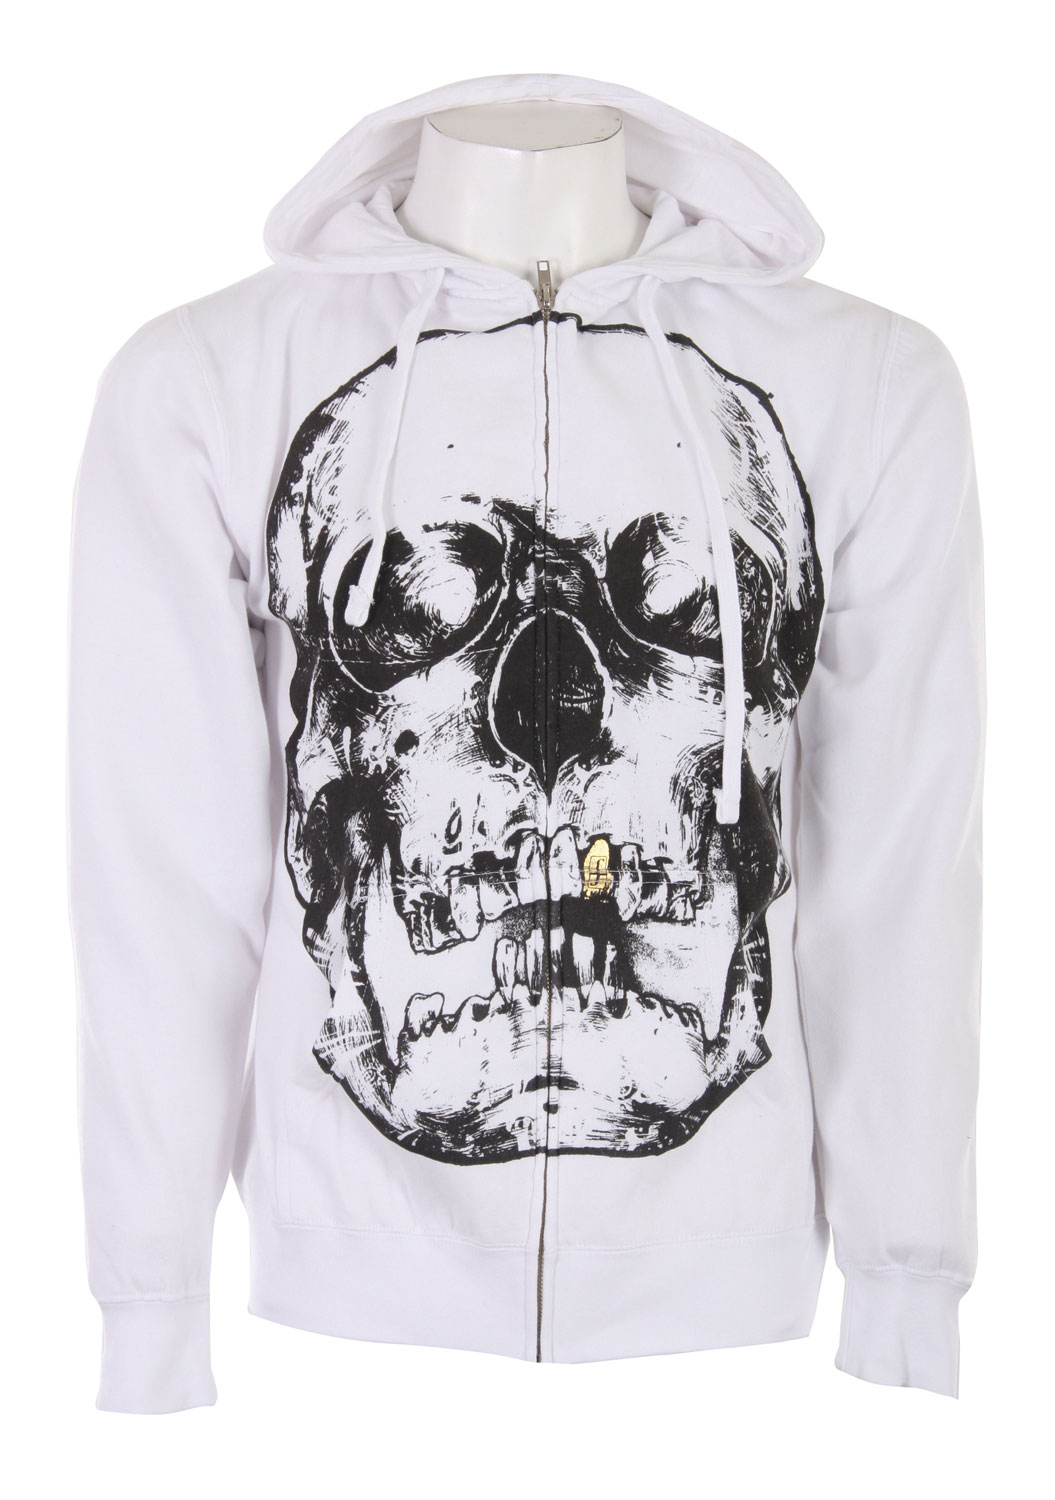 Skateboard The Forum Skull Zip Hoodie is for those who want to make a statement. This hoodie features a large skull design made of chino ink with a gold foil tooth. It come in mineral wash and is made of 80% cotton and 20% polyester. With its drawstring hood and full zip design with kangaroo pockets, this hoodie can easily be taken from skating to school. With a great price tag to boot, this sweatshirt is the perfect addition to any edgy skater's wardrobe.Key Features of the Forum Skull Zip Hoodie: 80% Cotton/20% Polyester Mineral wash Chino ink artwork with gold foil tooth - $20.95